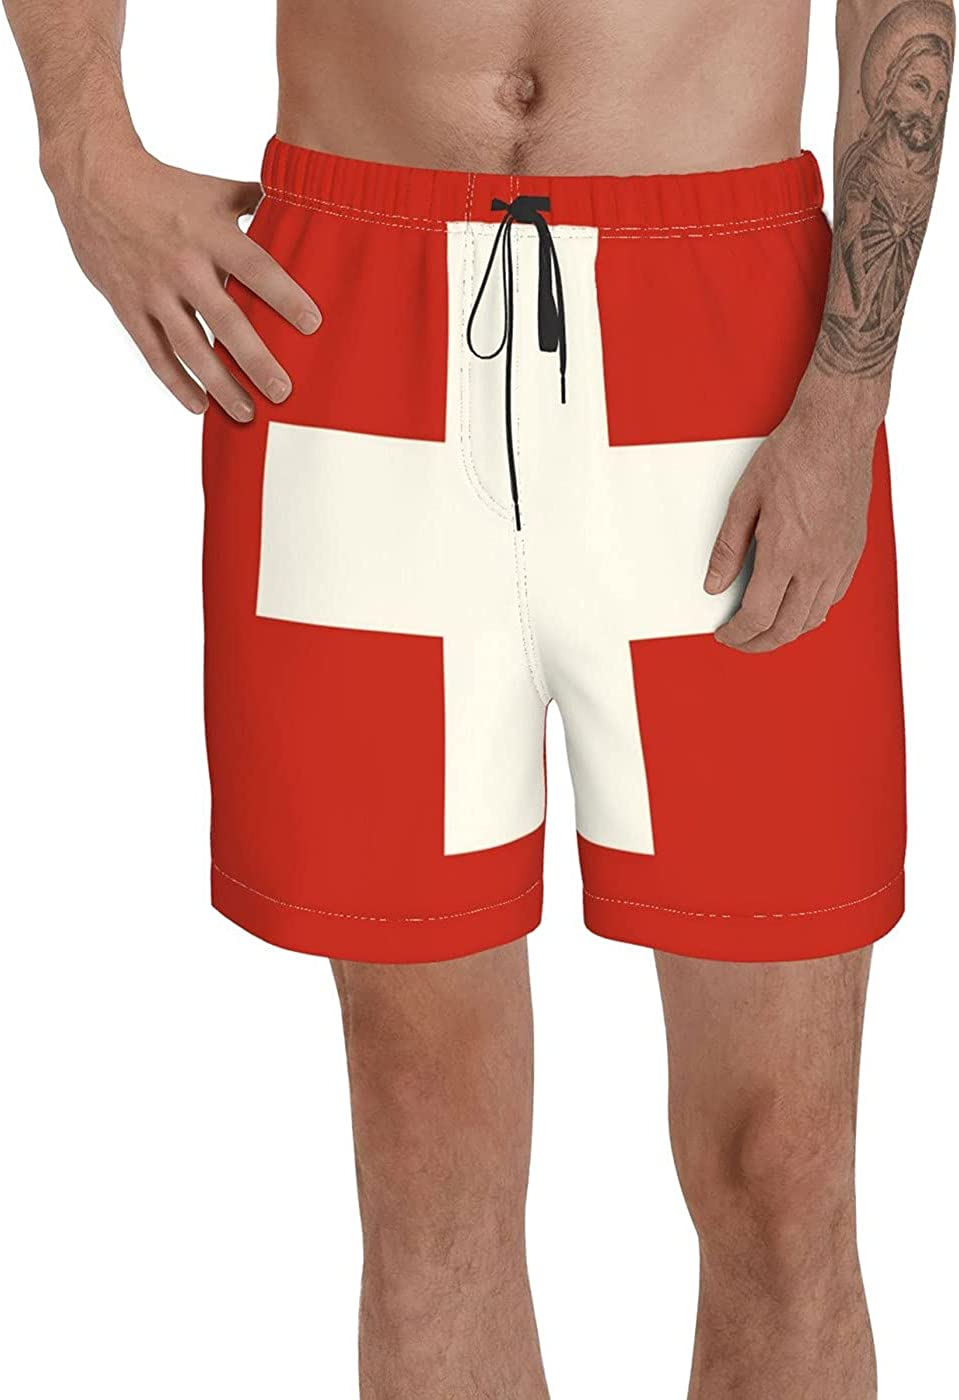 Count Switzerland Flag Men's 3D Printed Funny Summer Quick Dry Swim Short Board Shorts with